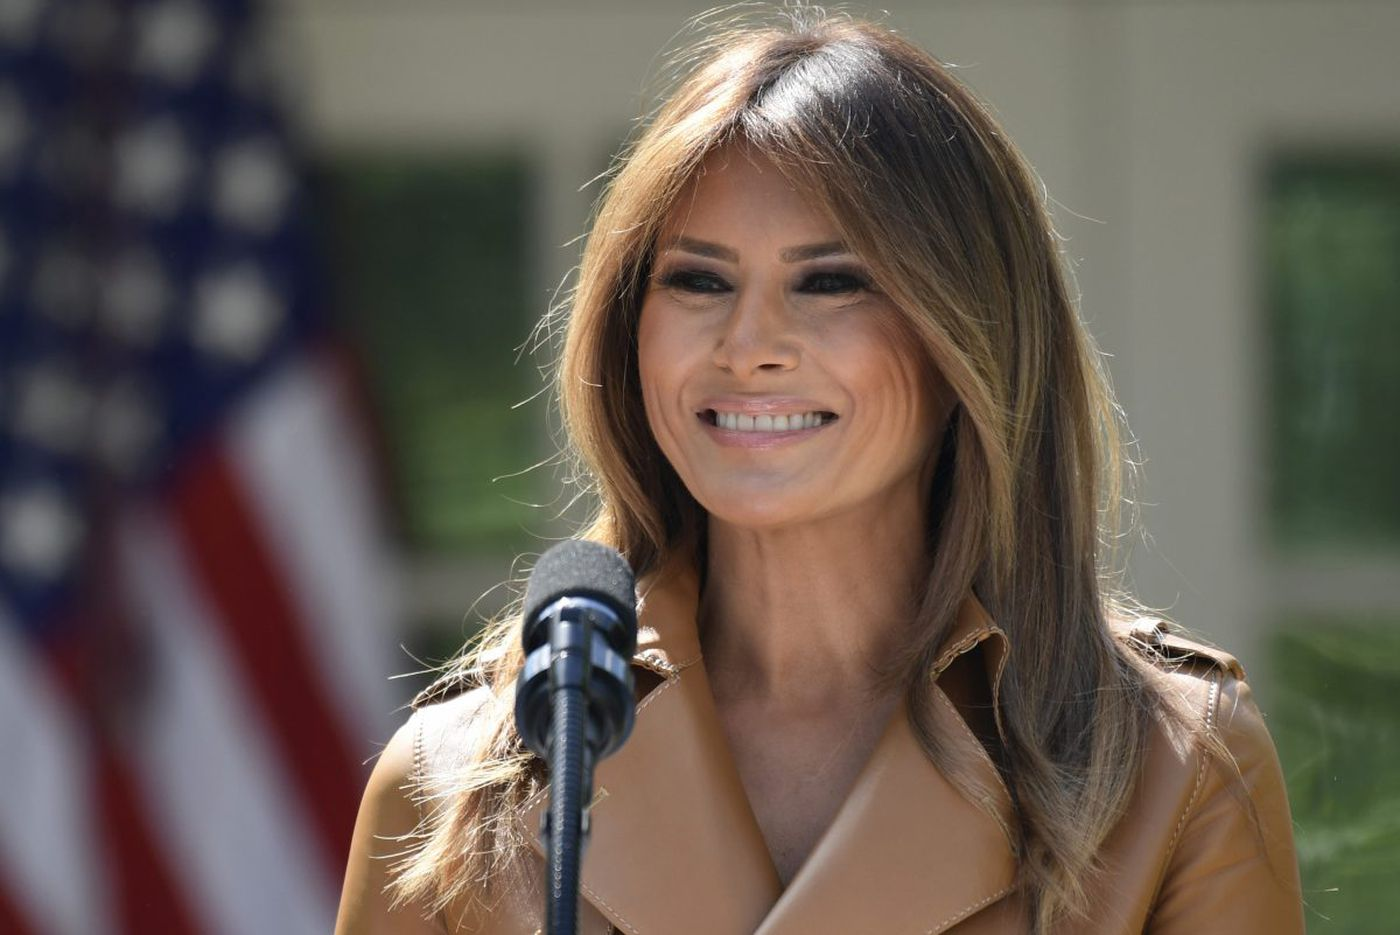 Fire reported on Melania Trump's plane